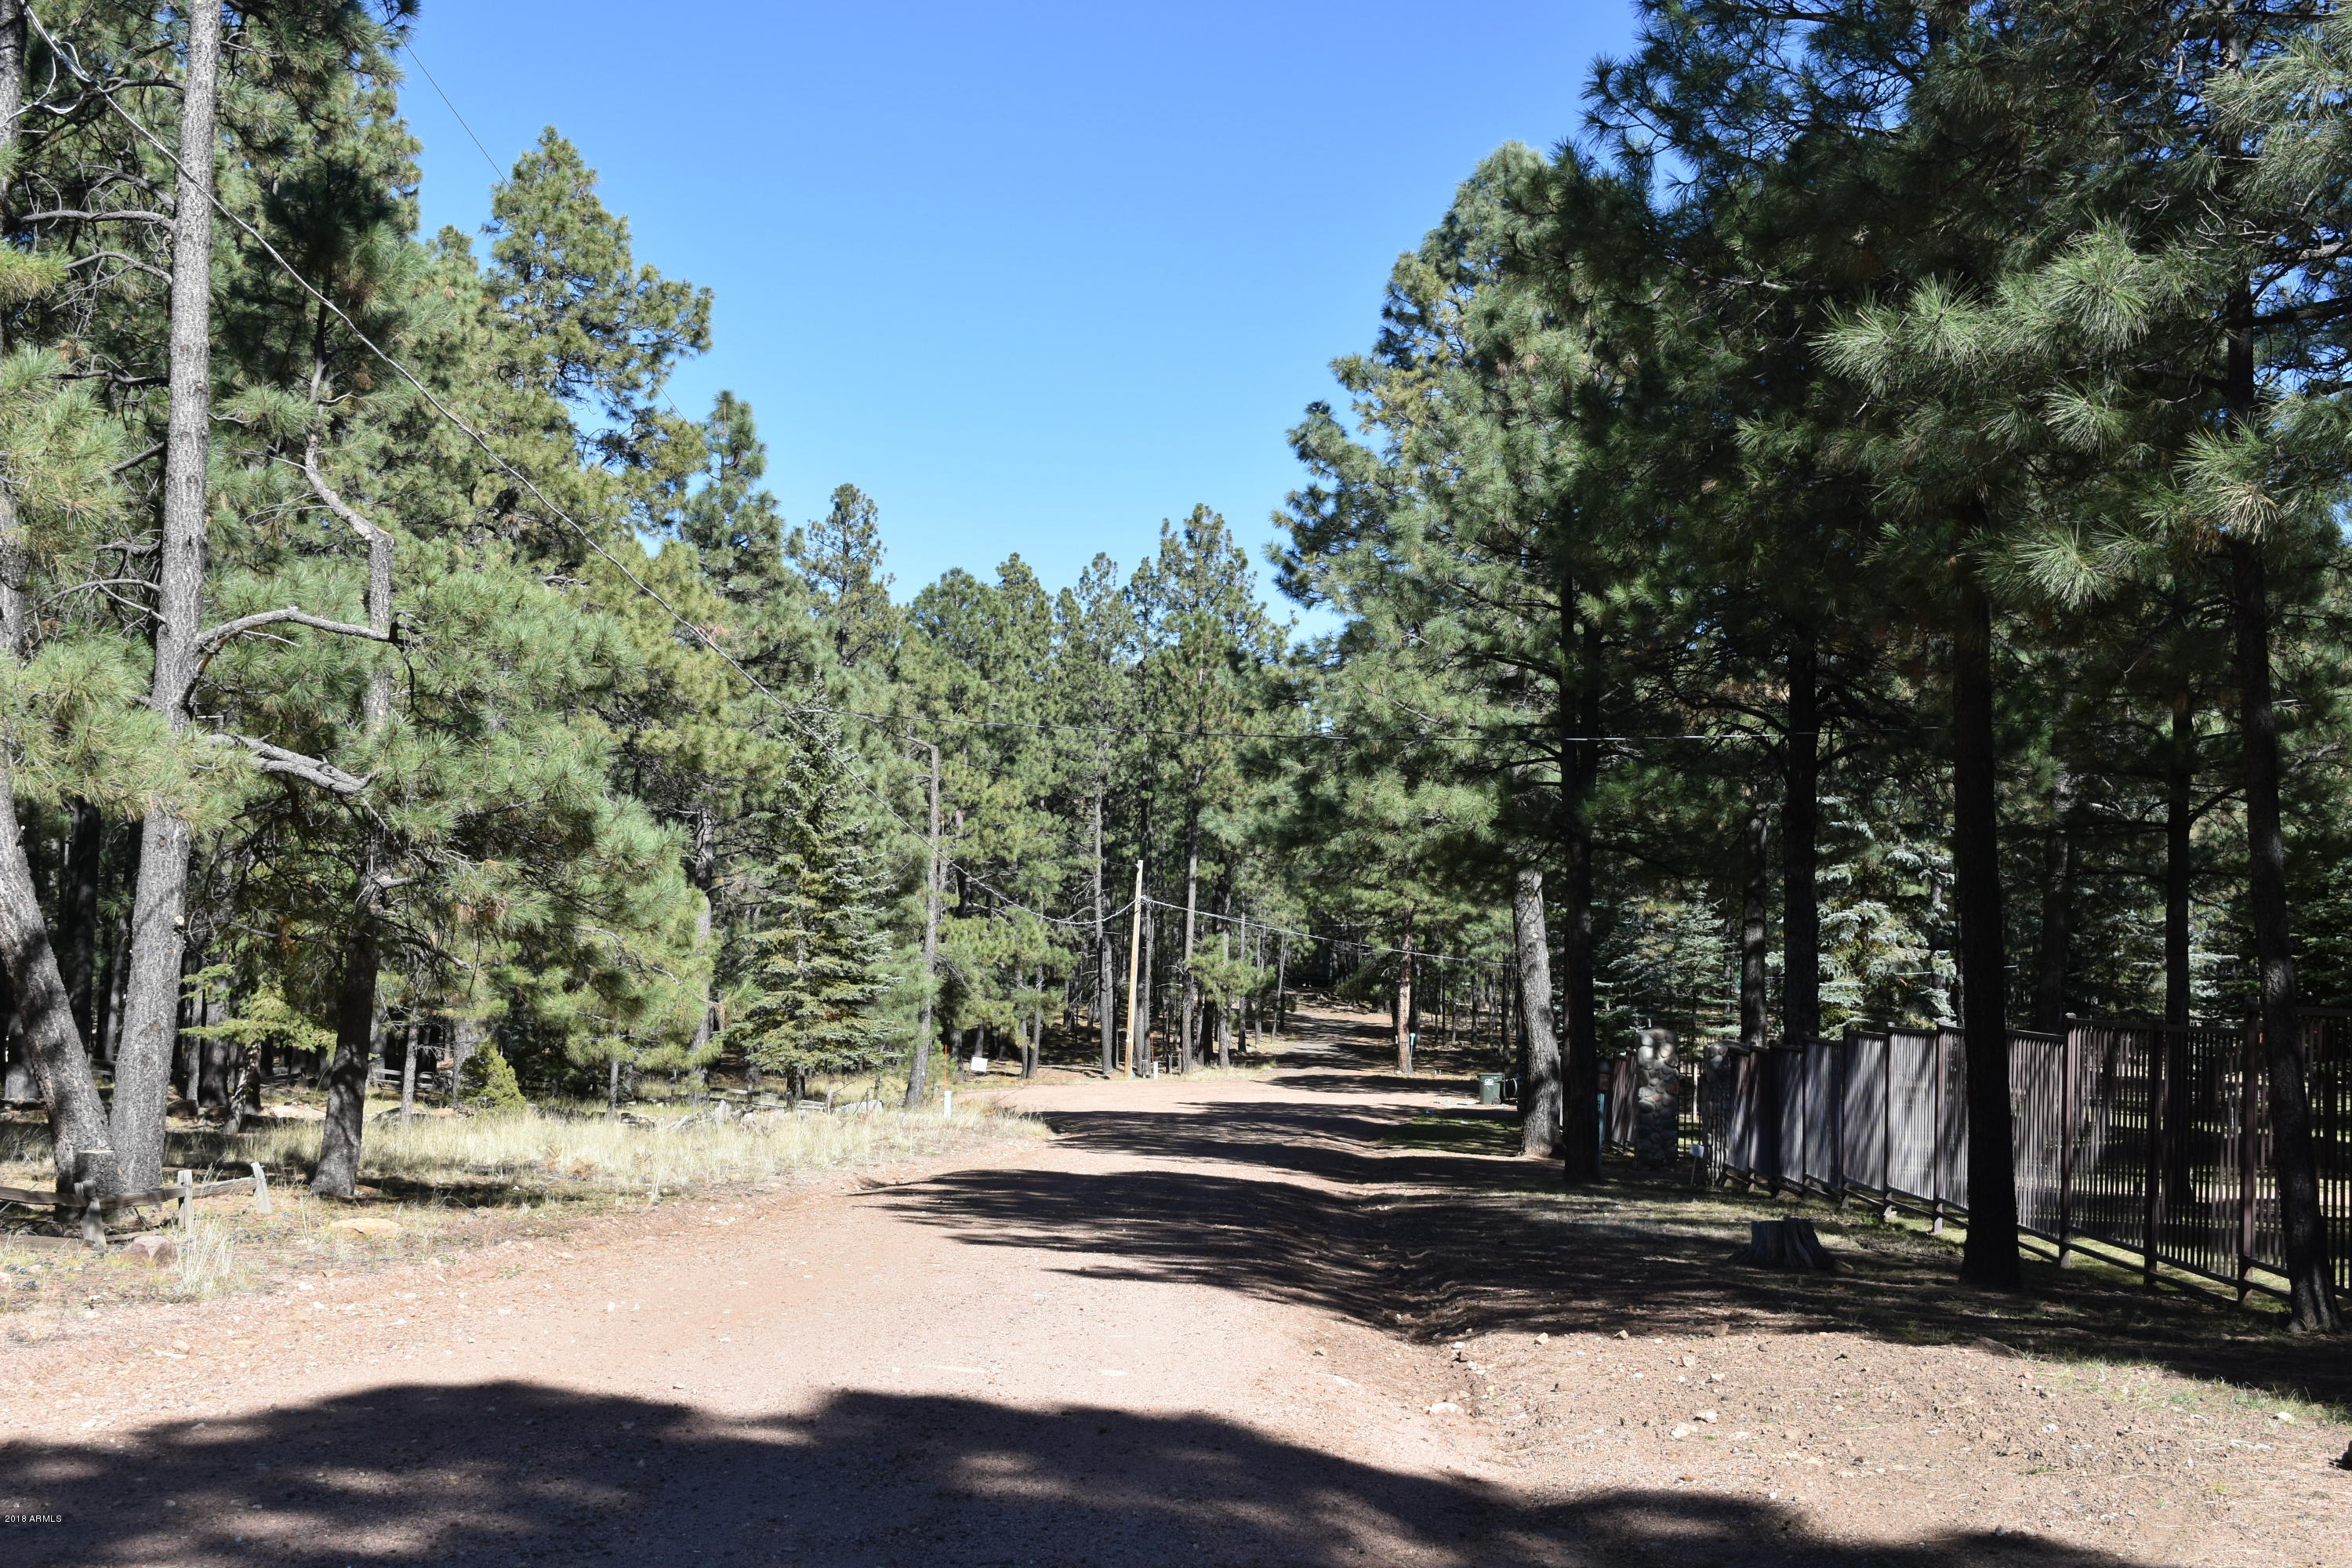 2495 Middle Loop # 694, Forest Lakes, AZ 85931, ,Land,For Sale,2495 Middle Loop # 694,6255210